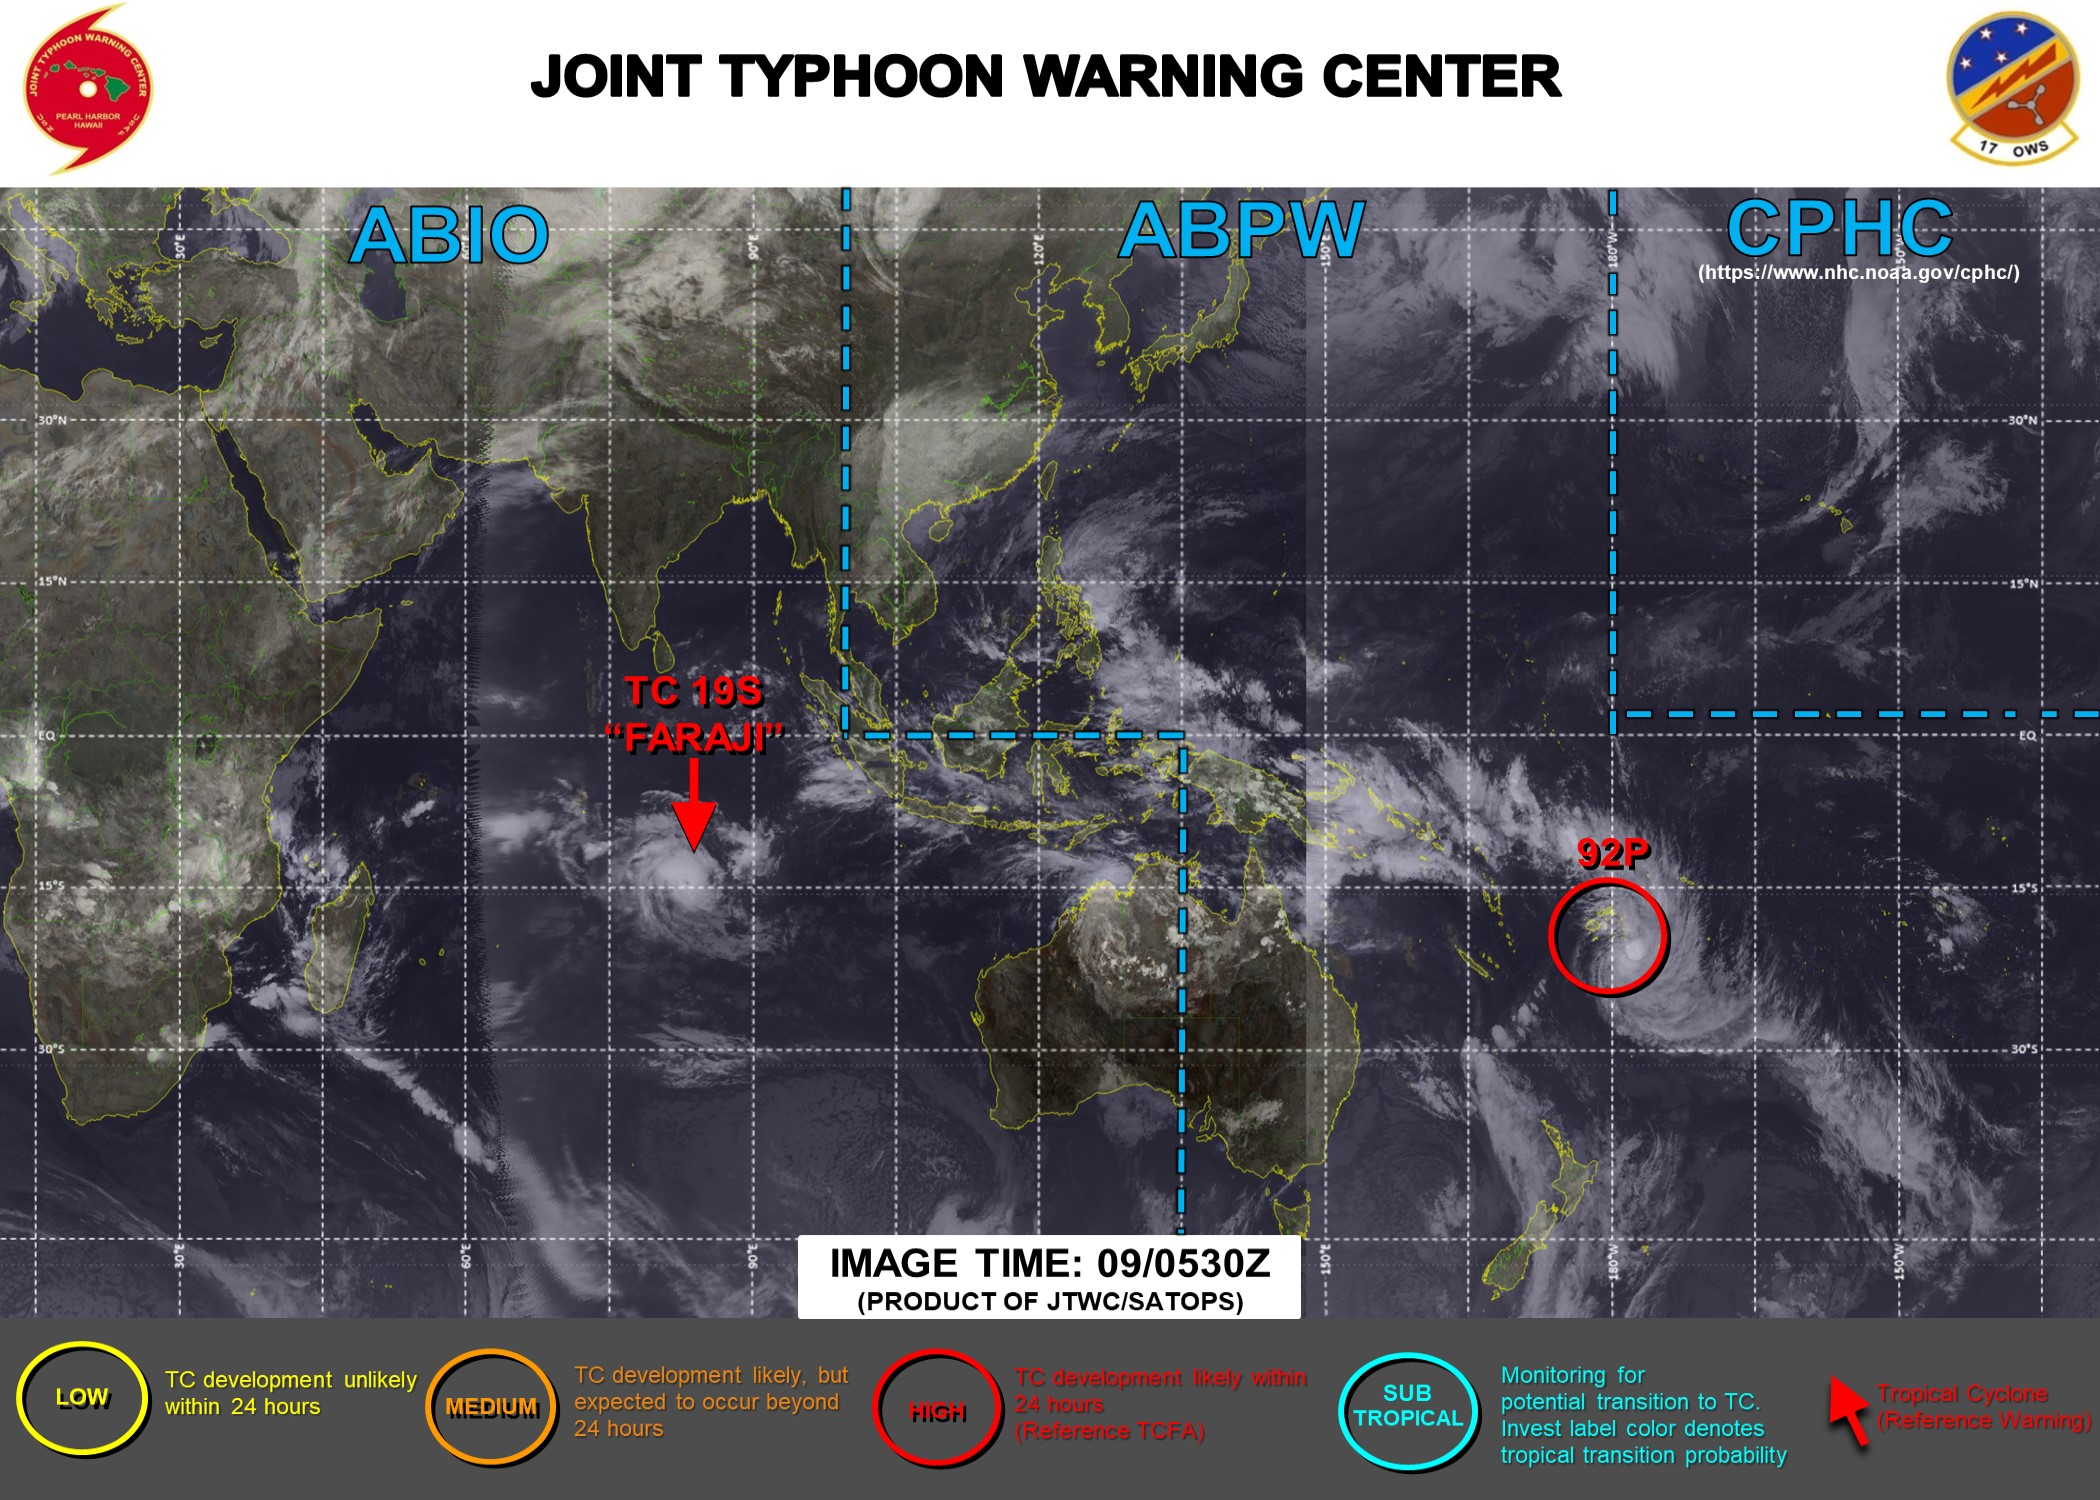 09/06UTC. JTWC HAS BEEN ISSUING 12HOURLY WARNINGS ON 19S(FARAJI). INVEST 92S IS STILL HIGH. 3HOURLY SATELLITE BULLETINS ARE PROVIDED FOR BOTH 19S AND 92P.